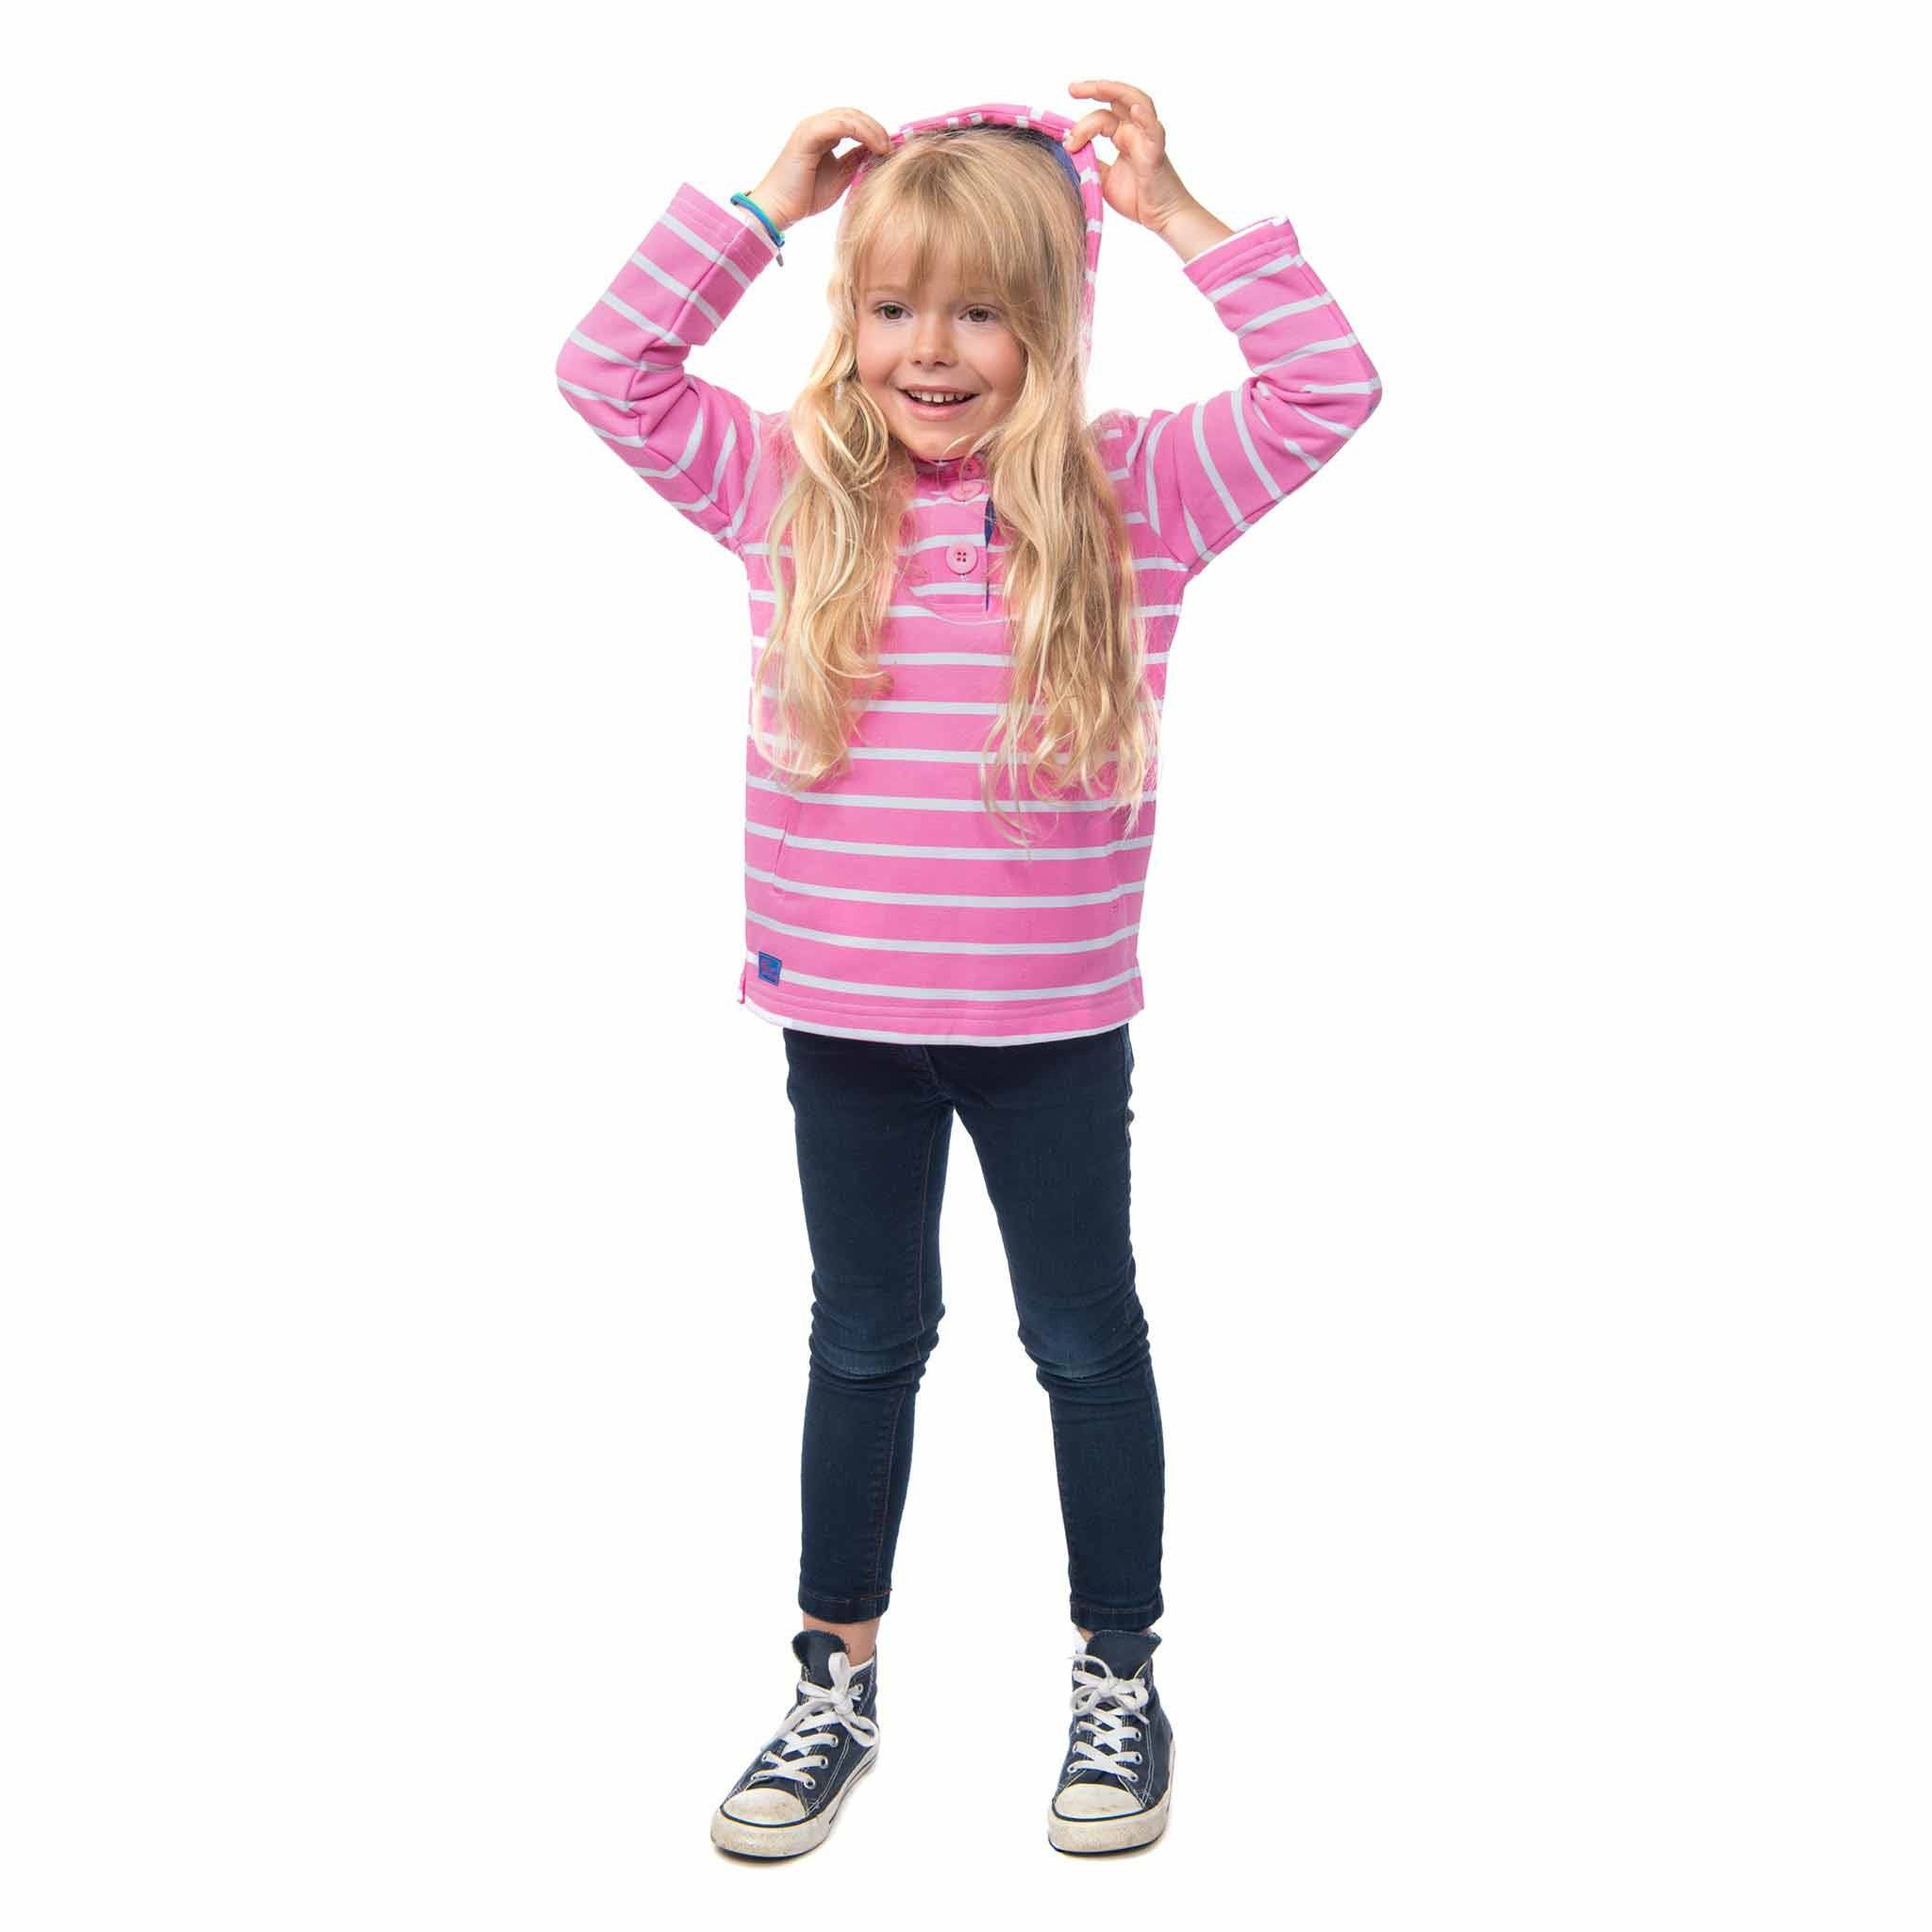 Lighthouse Girls' Maddy Cotton Jersey Sweatshirt in Pink and White Stripe. Half Buttoned. Hands in side pockets.